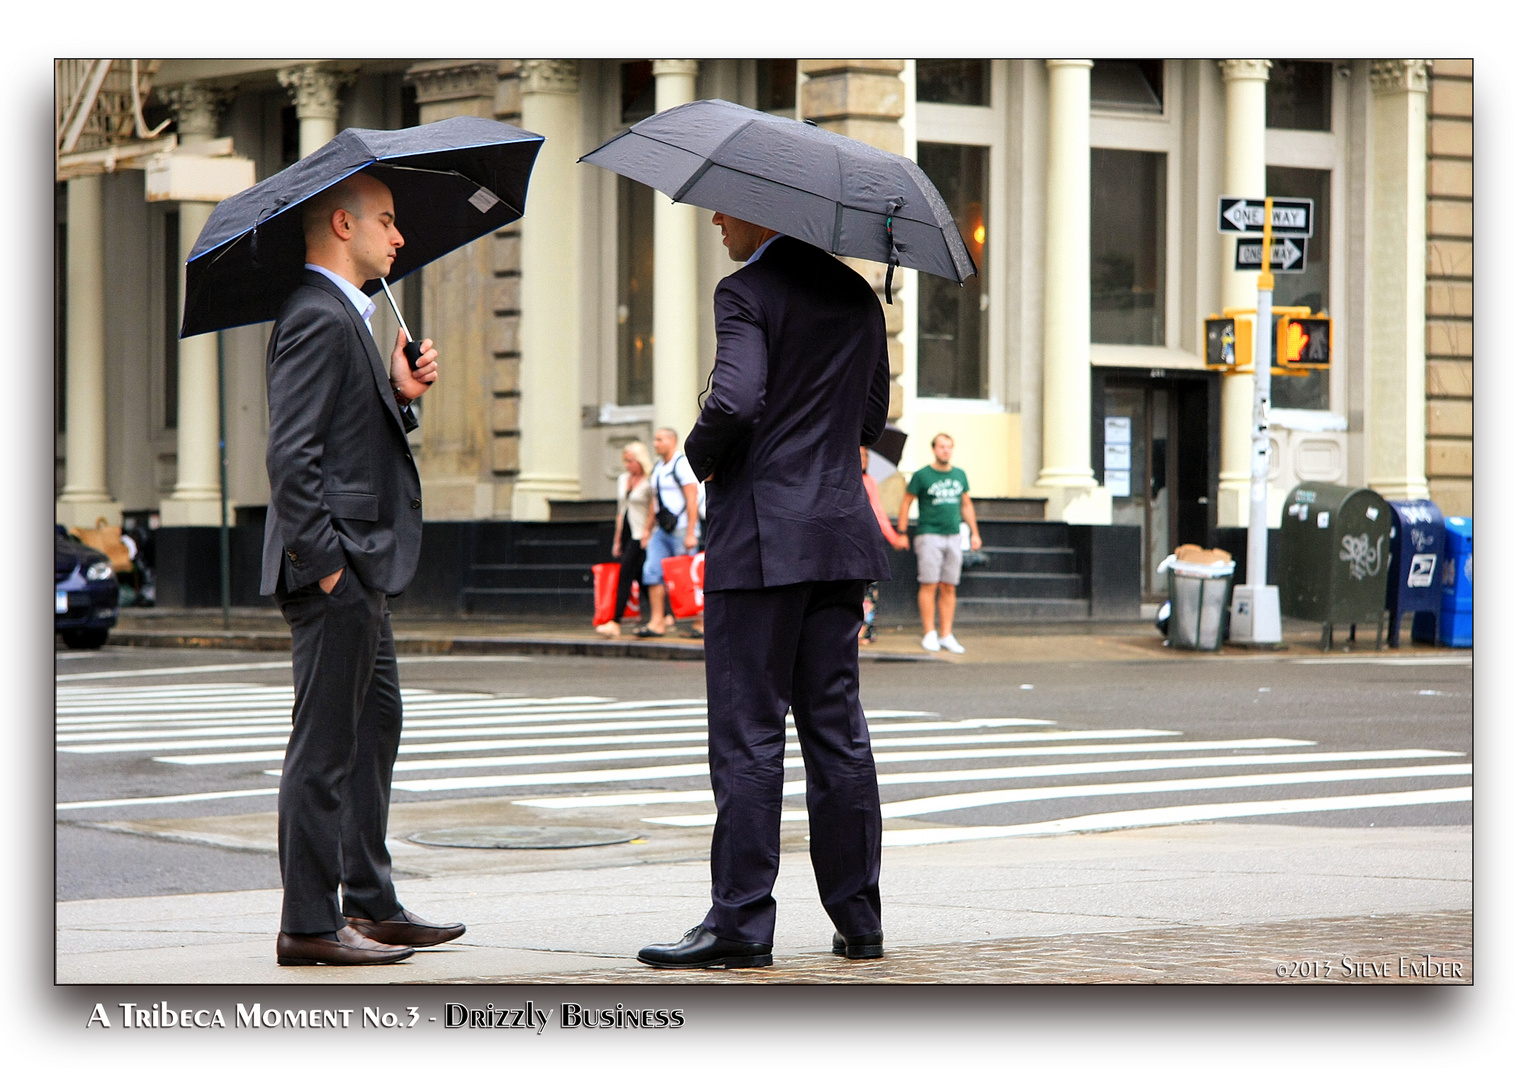 A Tribeca Moment No.3 - Drizzly Business